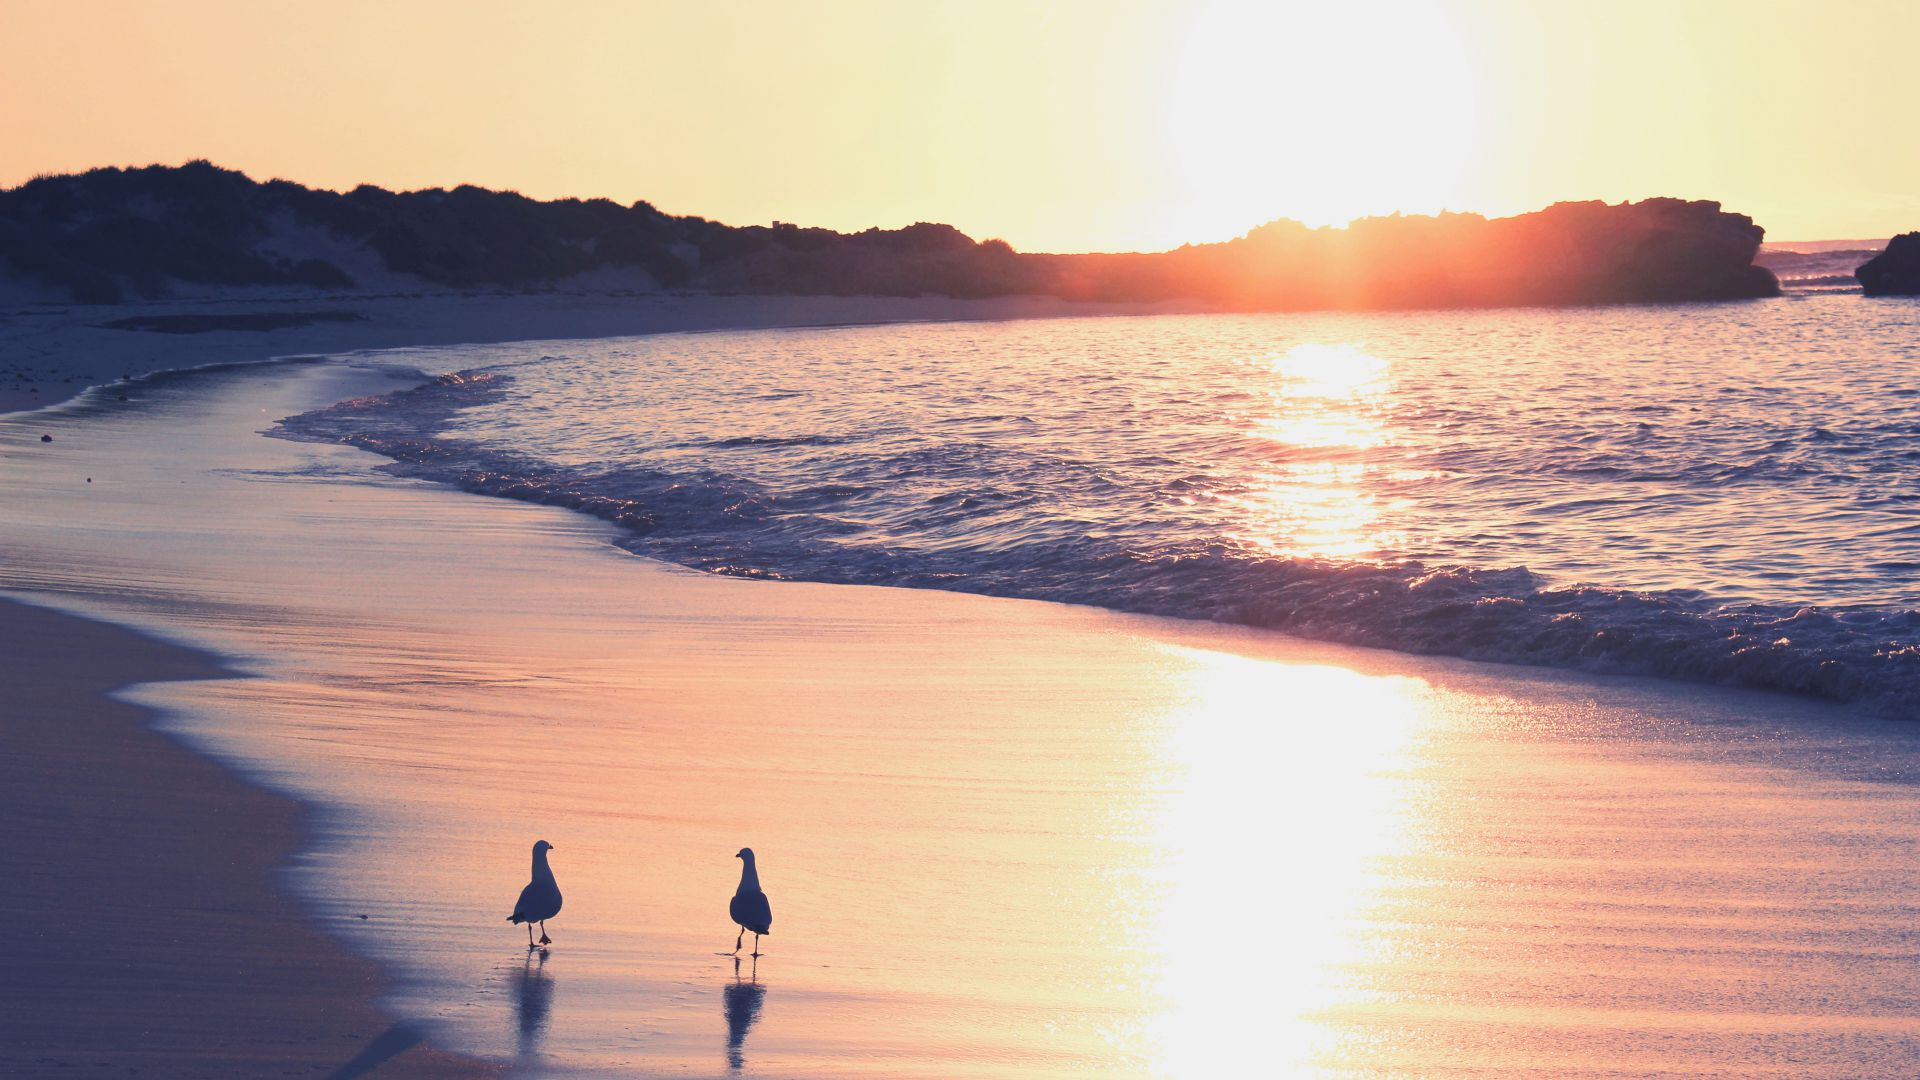 Ocean, 5k, 4k wallpaper, sea, sunrise, shore, seagull, beach (horizontal)